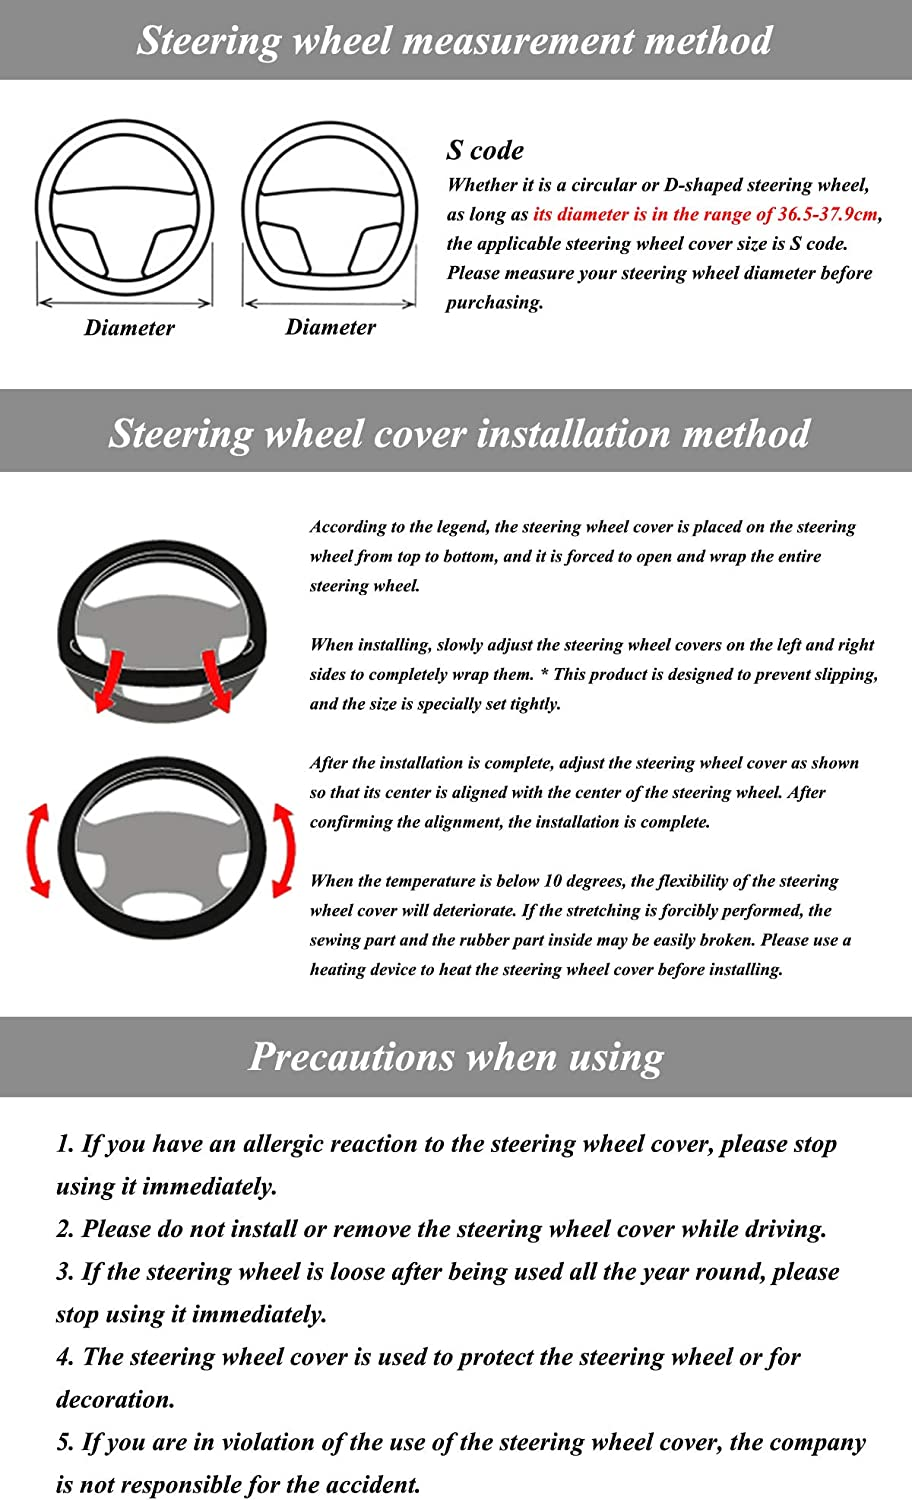 Anti-slip Universal 37-38 cm //14.5-15 inch D Shape Flat Bottom Steering Wheel Cover Breathable Blue Car Leather Steering Wheel Cover Fit Flat Bottom Steering Wheel with Pattern Design